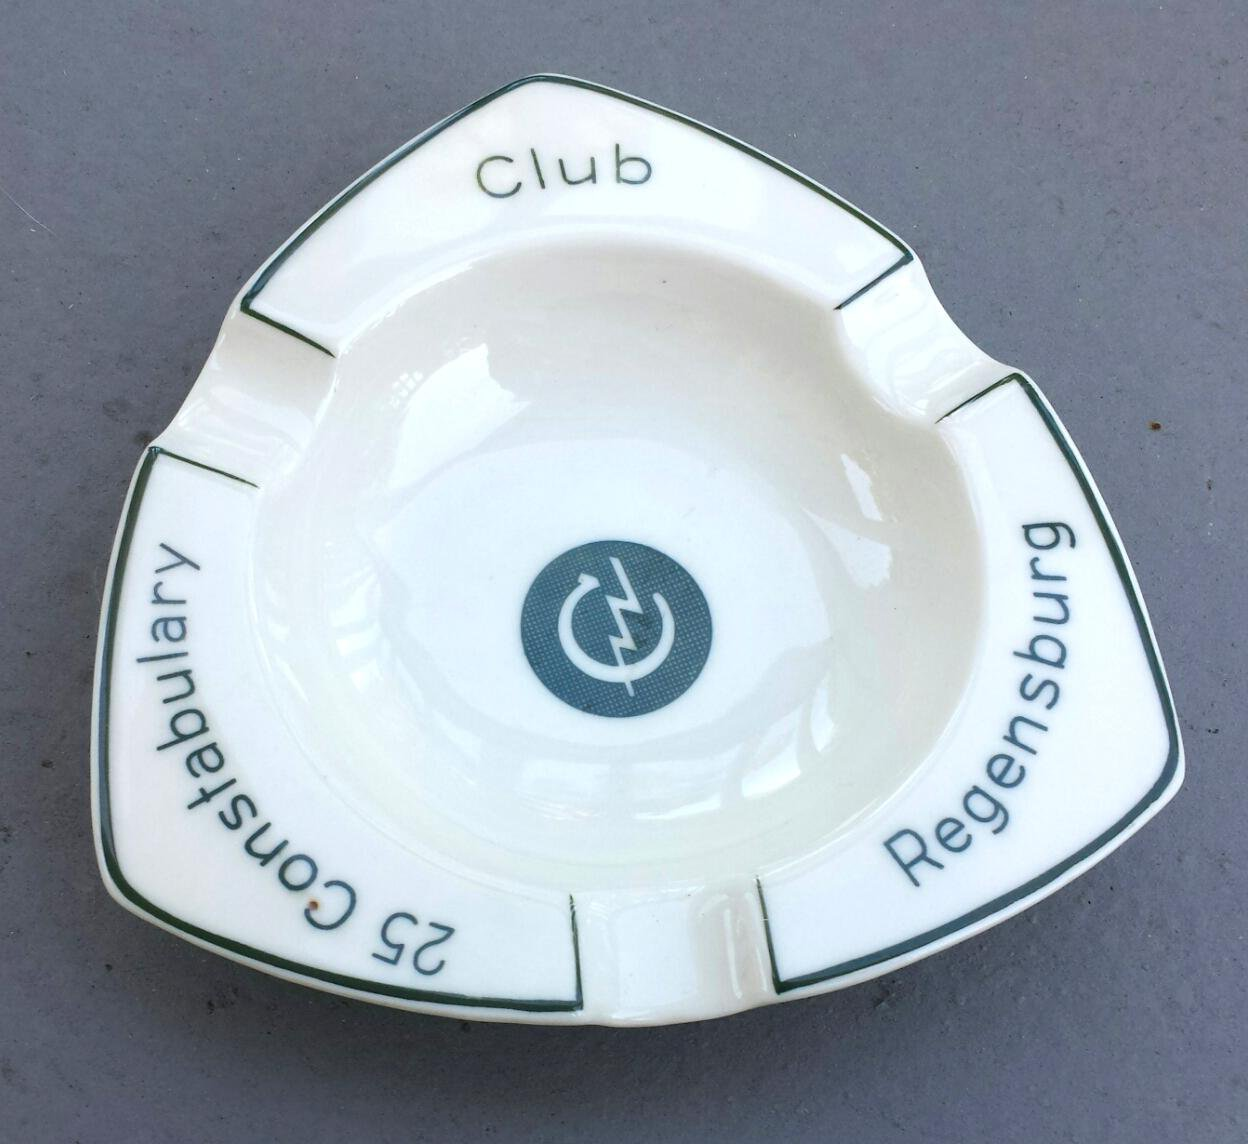 Military Club Souvenir Ashtray, 25th Constabulary, Regensburg, Germany